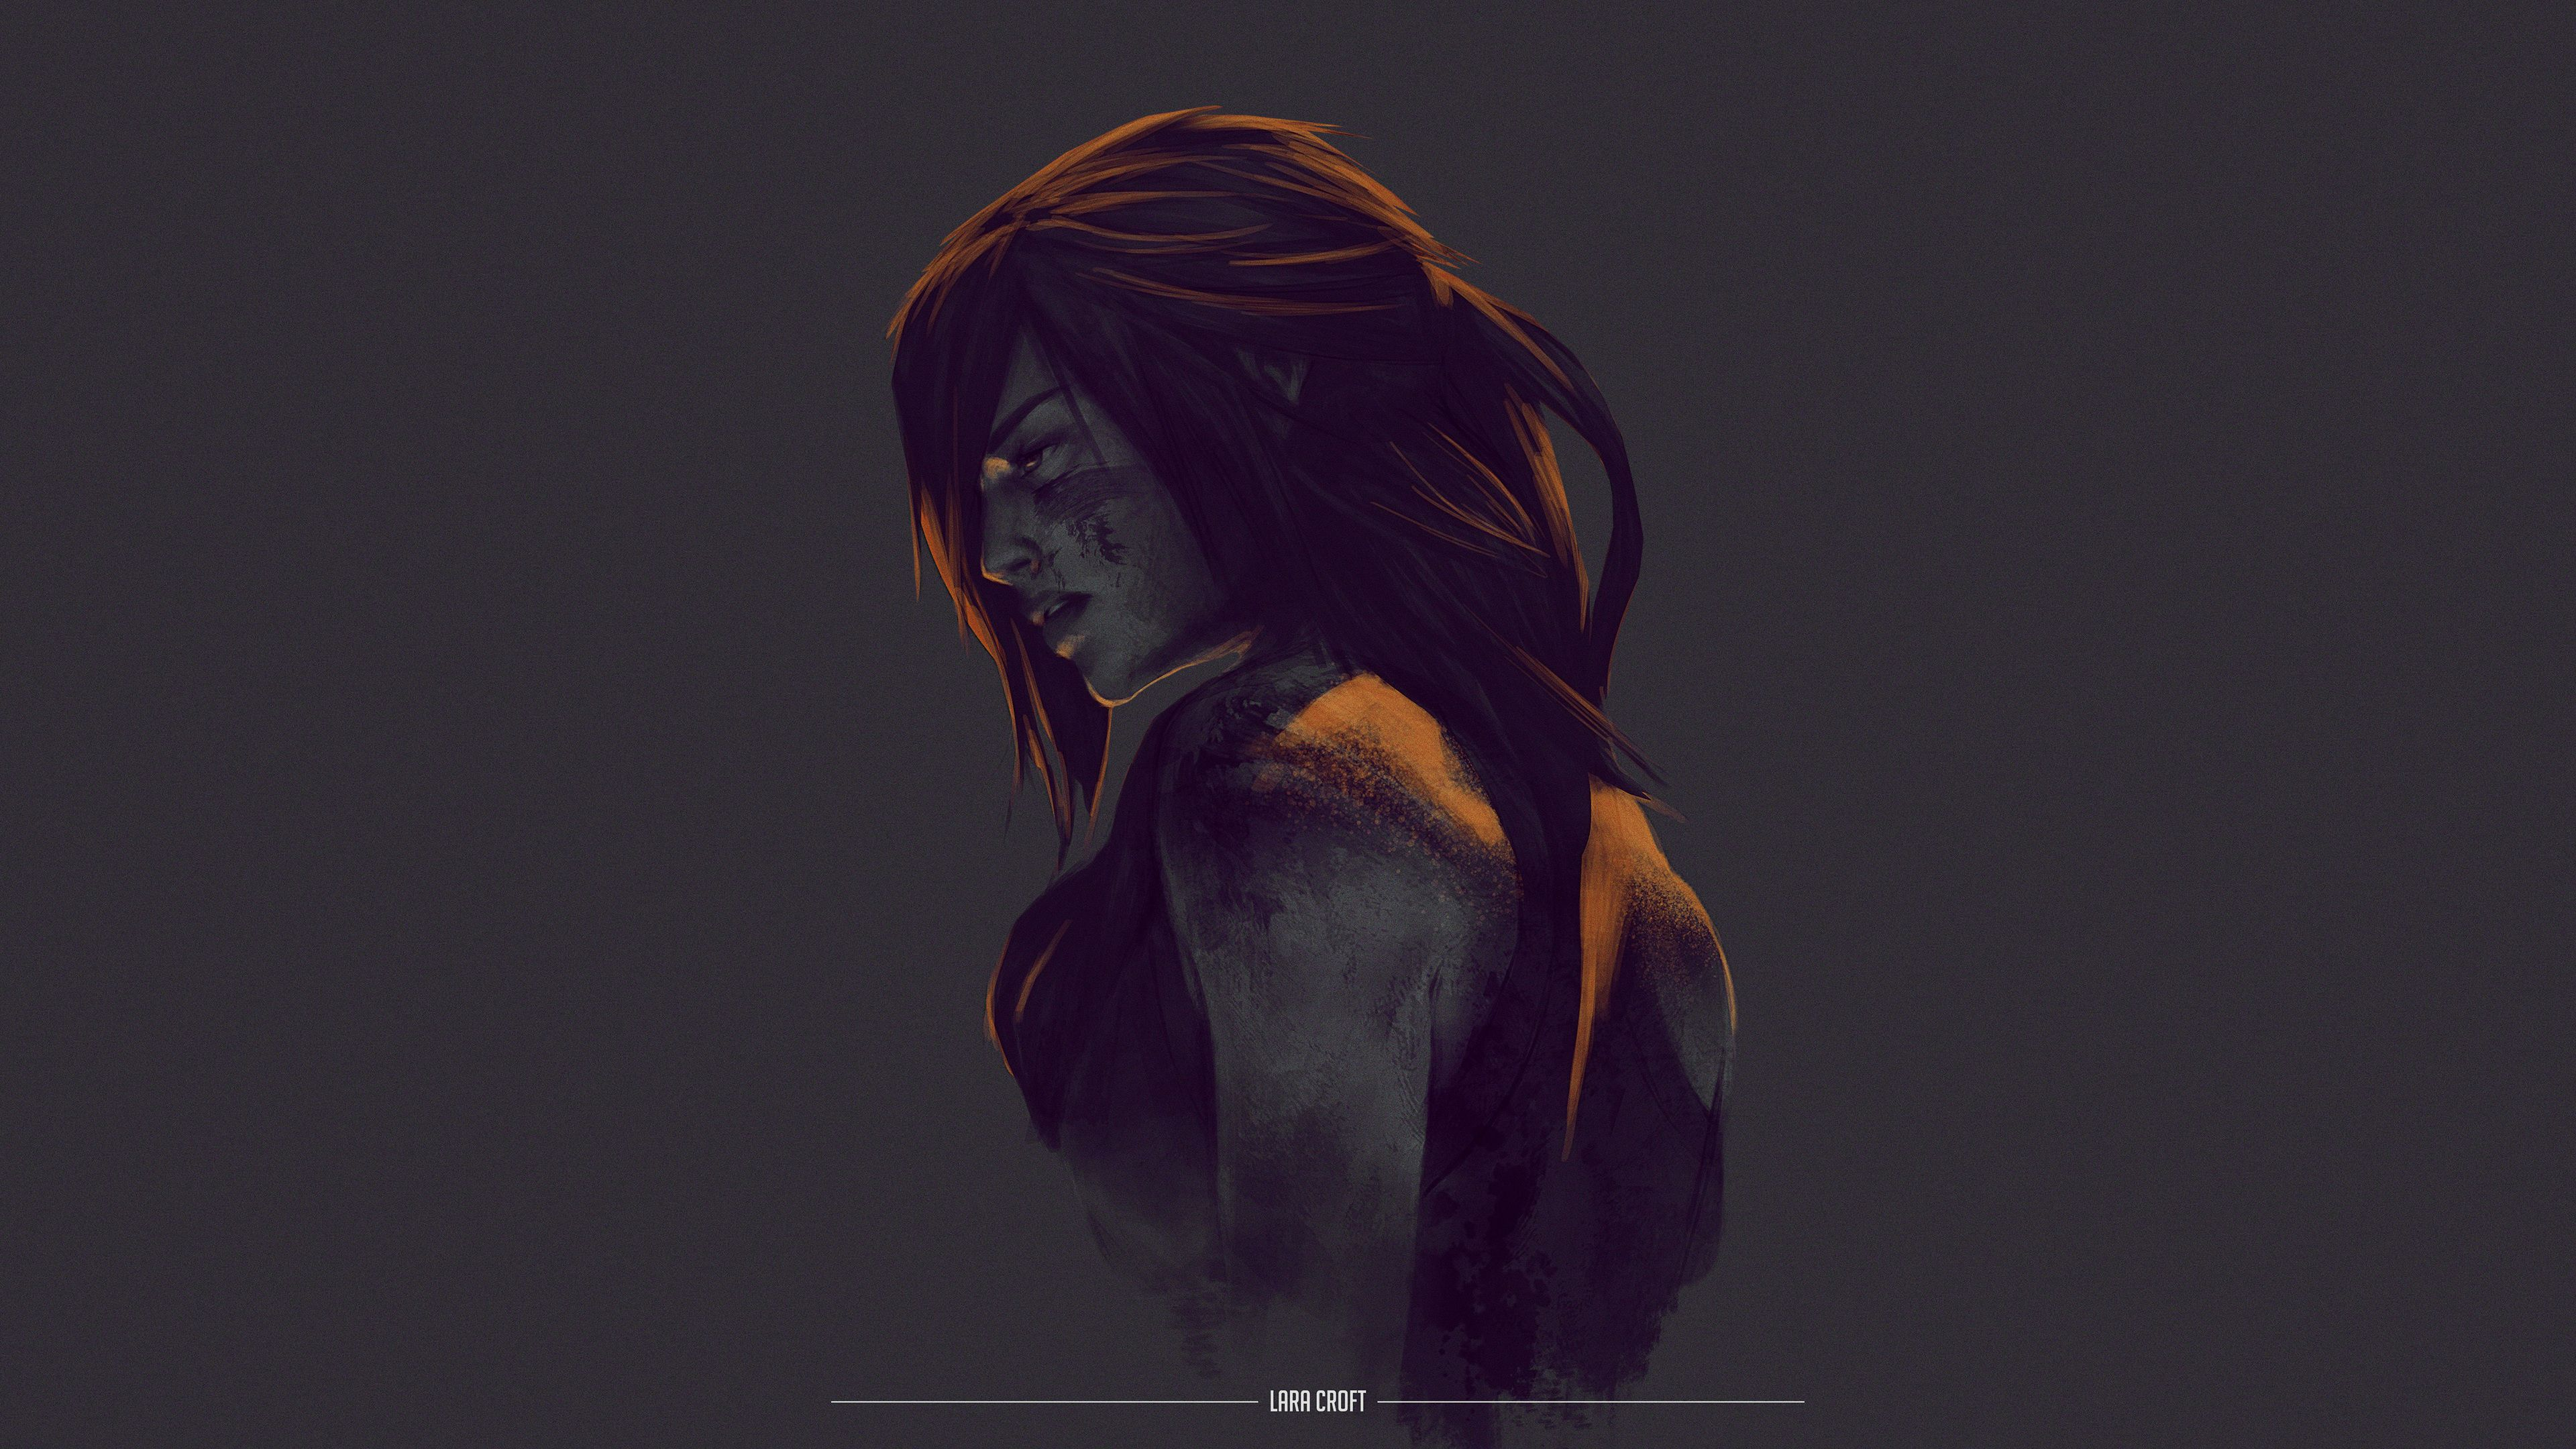 Lara Croft Minimalism 4k Tomb Raider Wallpapers Minimalist Wallpapers Minimalism Wallpapers Tomb Raider Wallpaper Lara Croft Wallpaper Minimalist Wallpaper